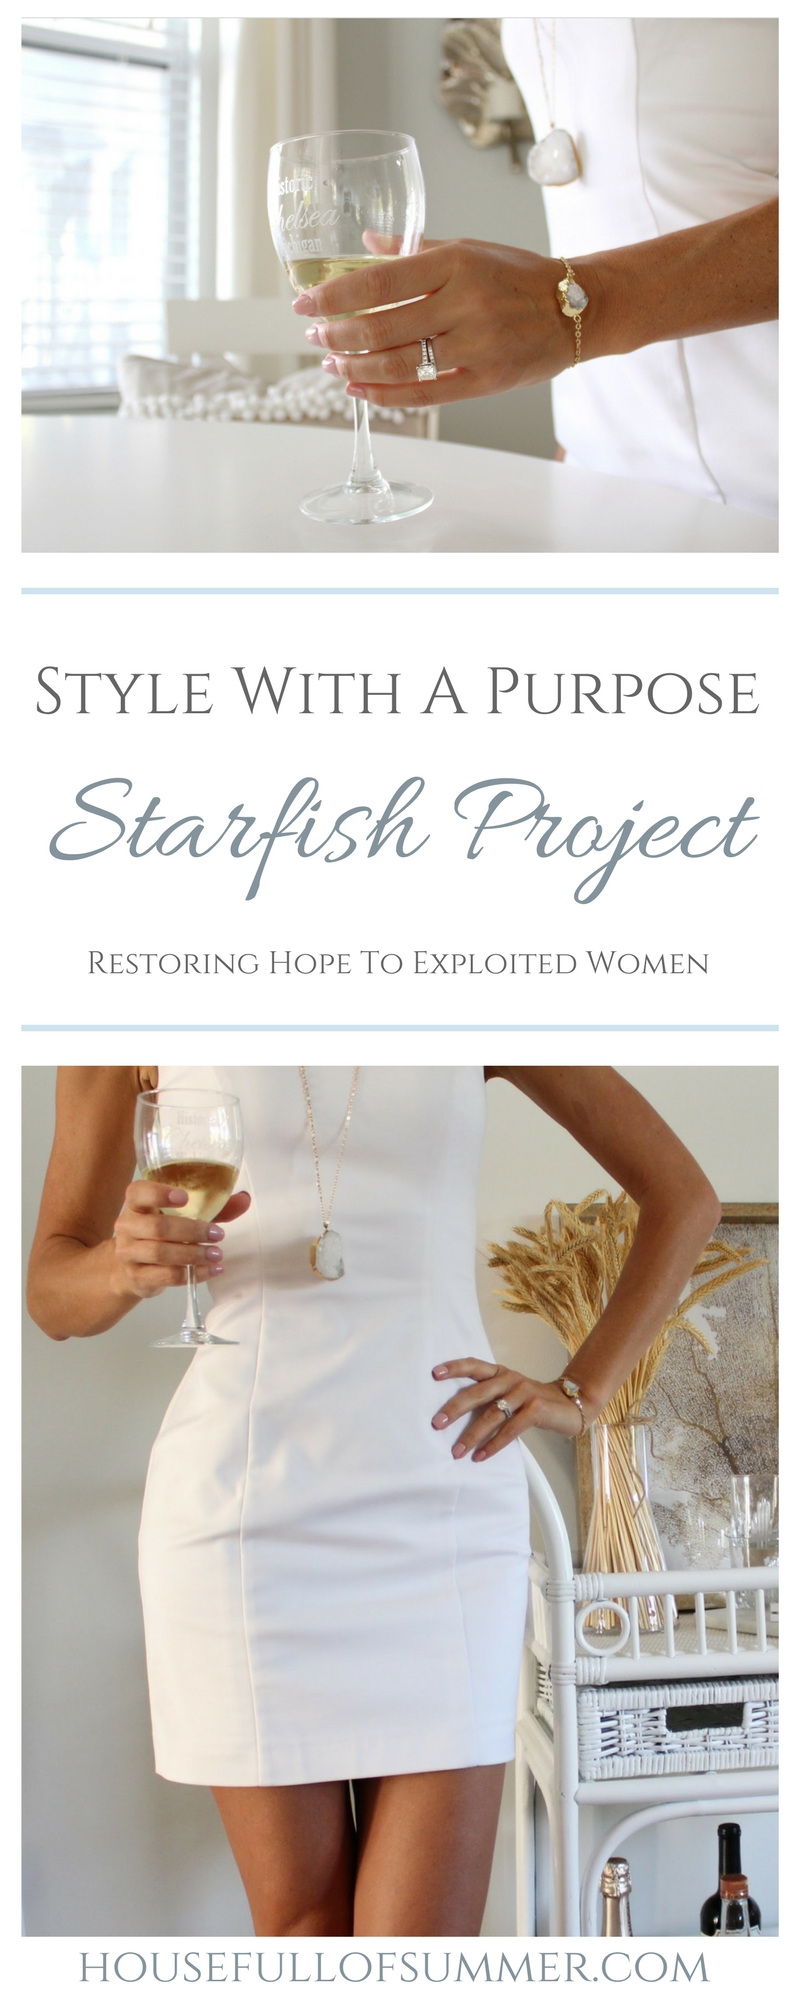 Style With A Purpose - Starfish Project | House Full of Summer Blog -help exploited women, human trafficking, jewelry, gold necklace, bracelet